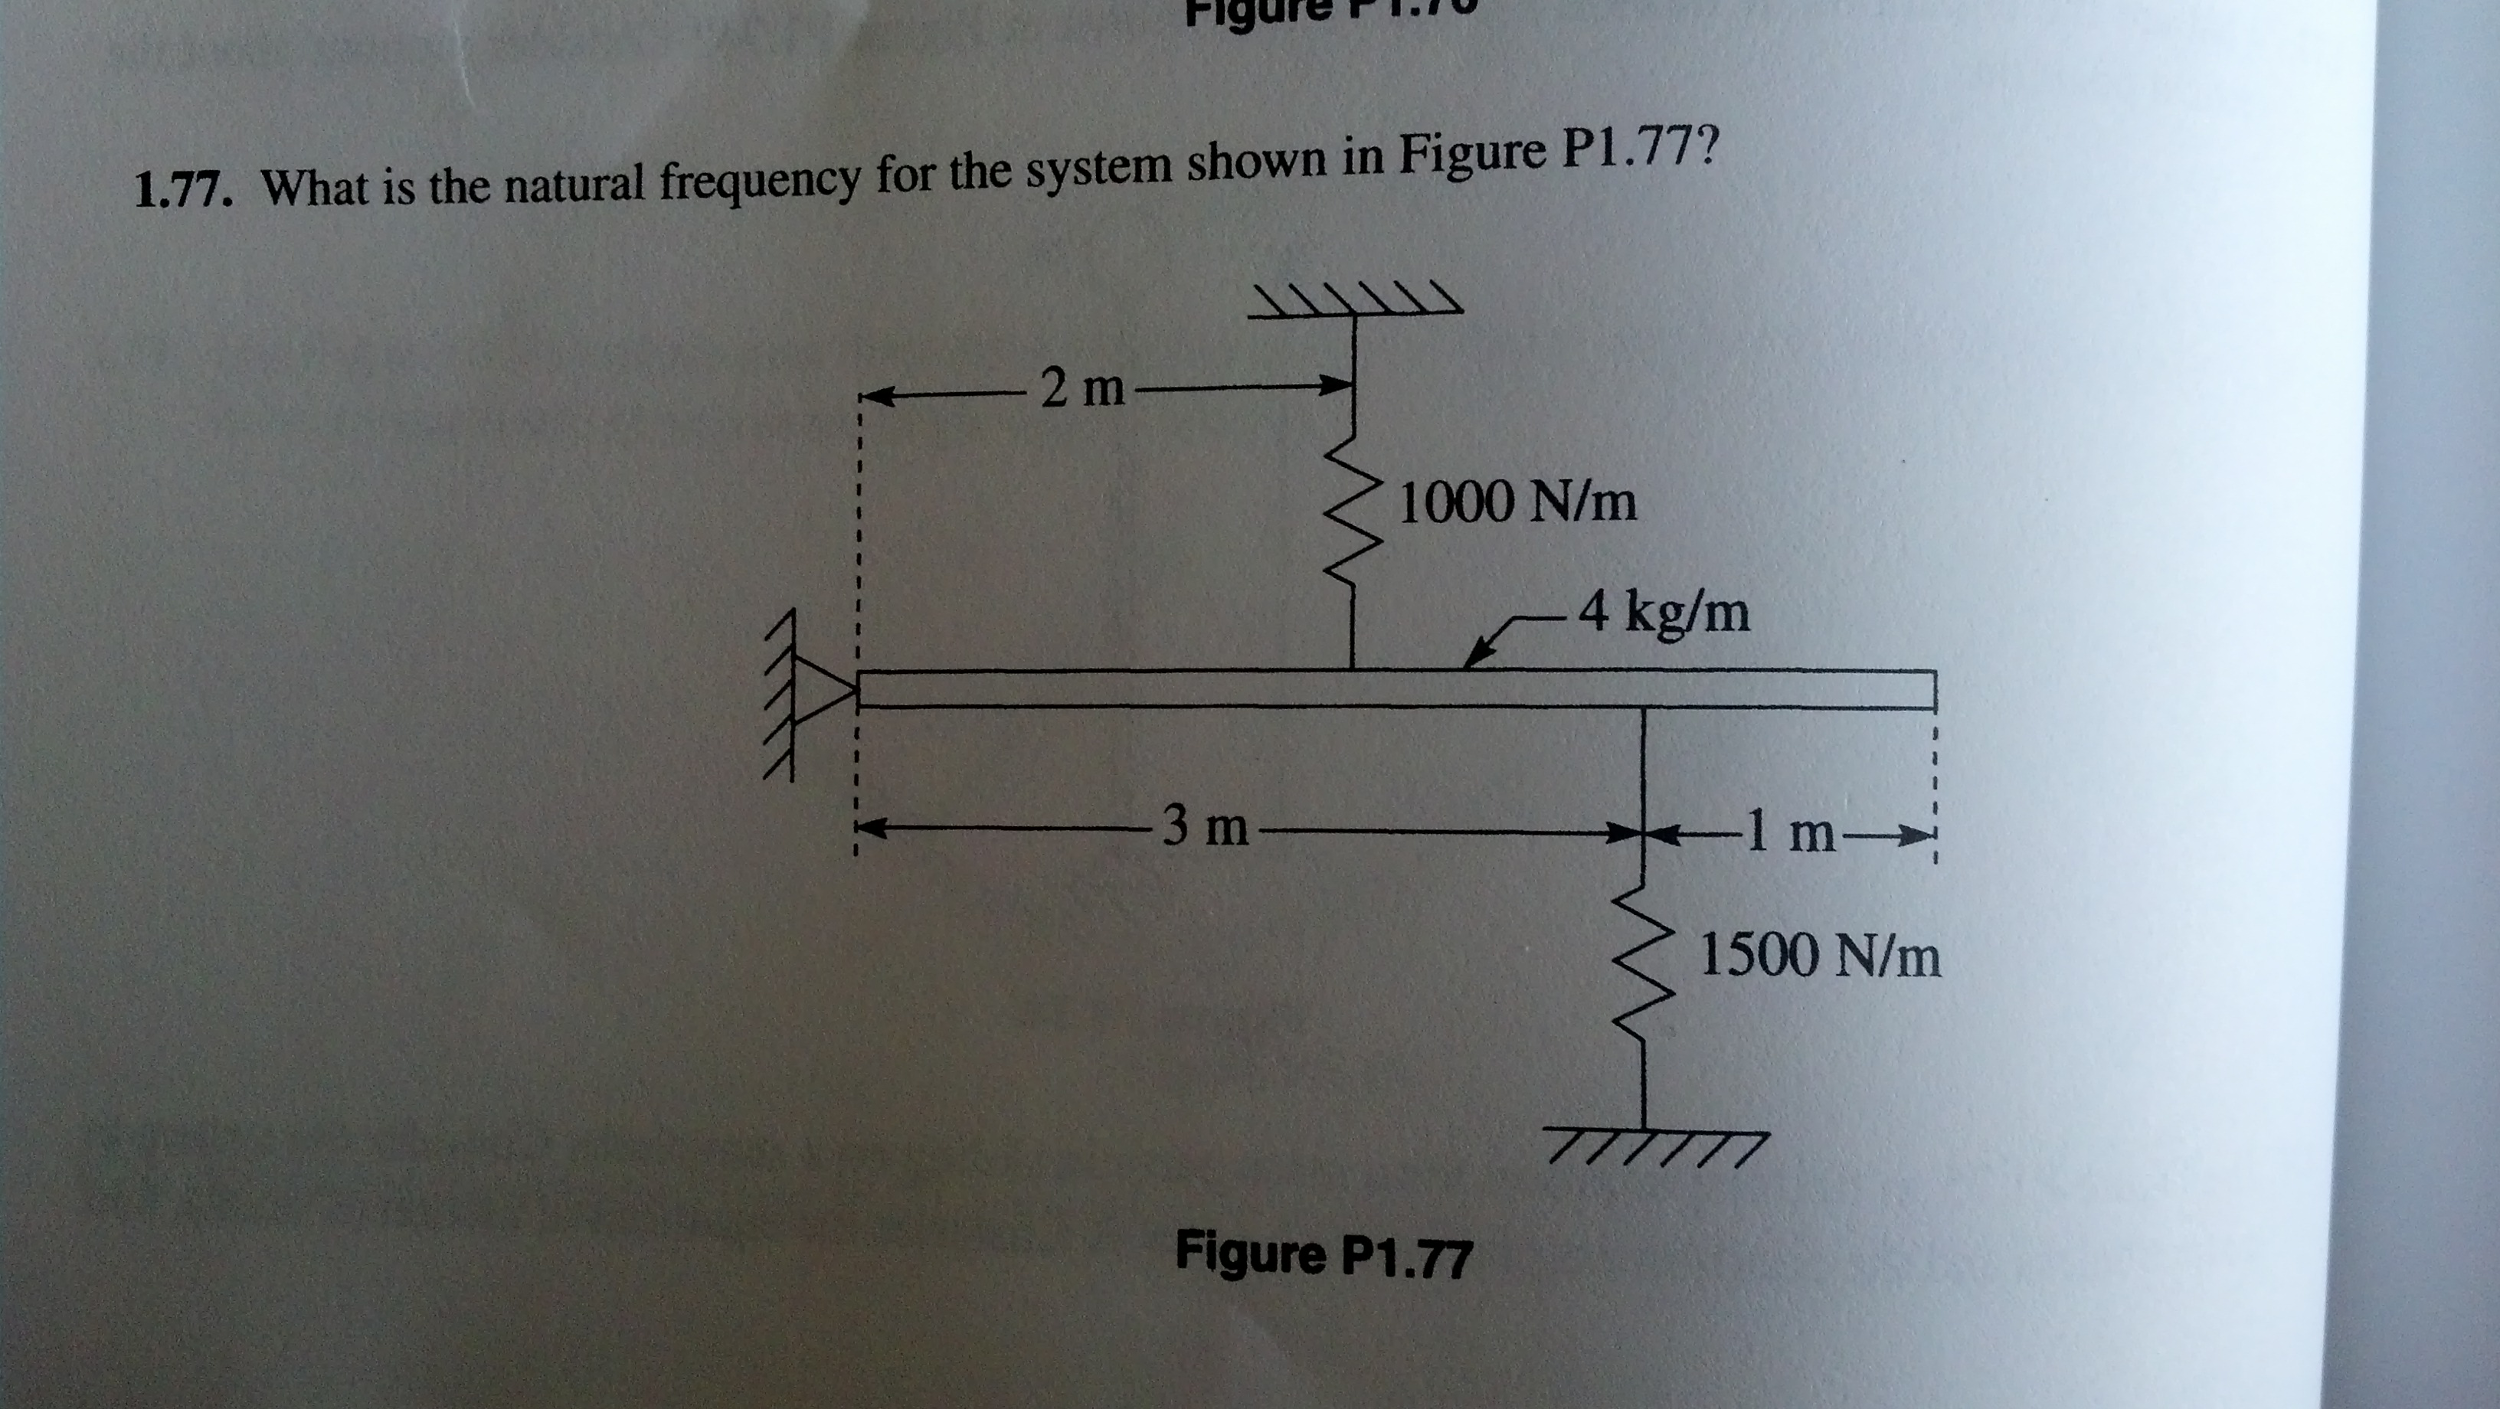 What is the natural frequency for the system shown